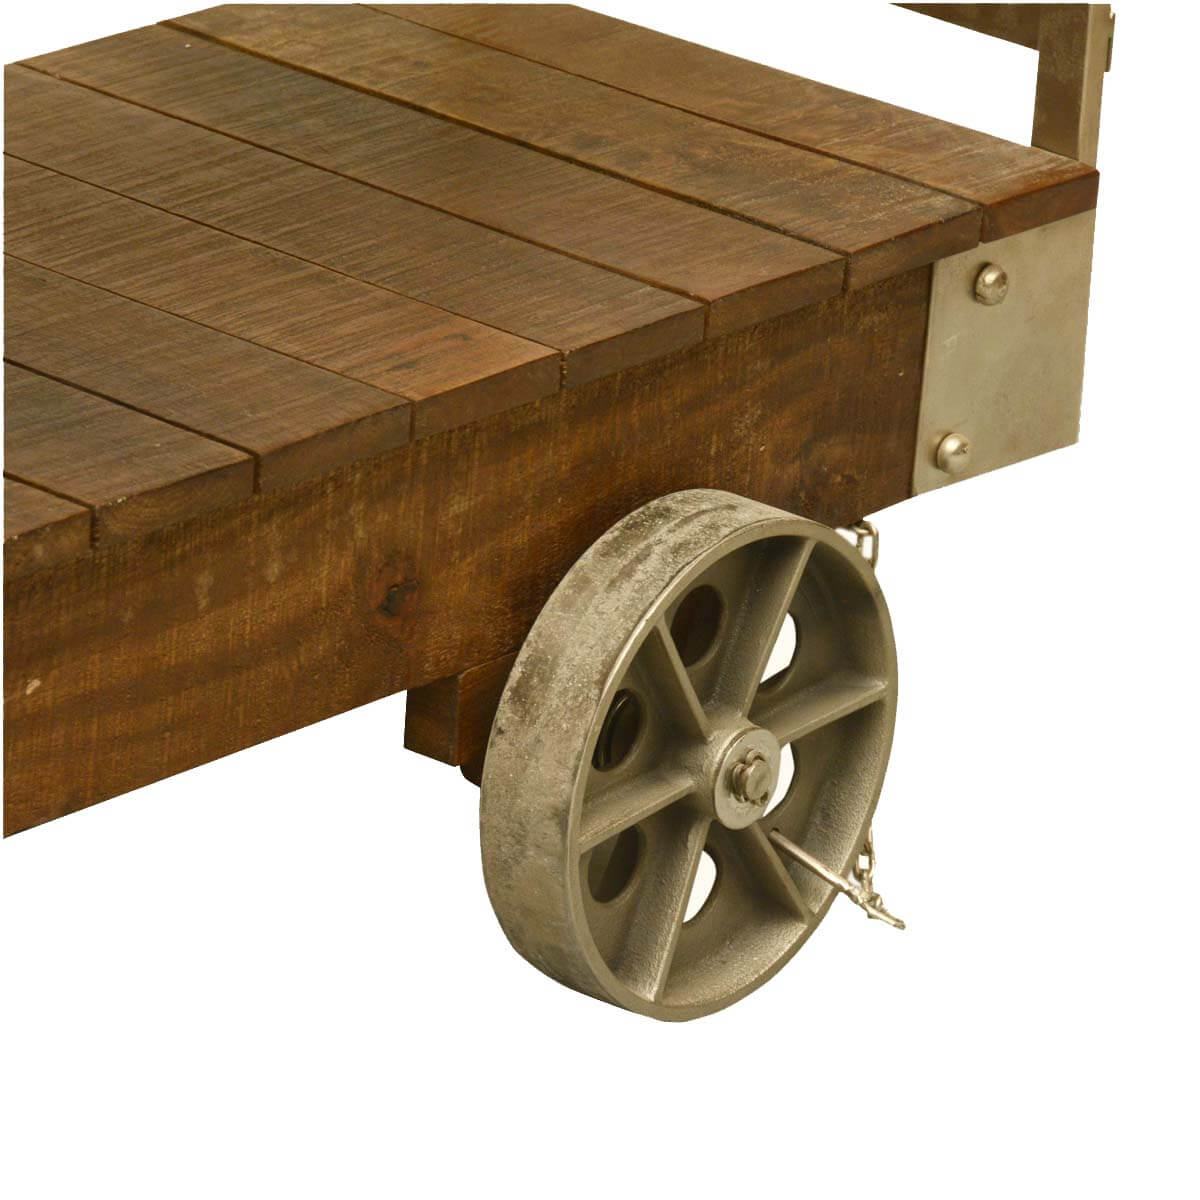 Industrial Rolling Reclaimed Wood & Iron 3 Tier Console